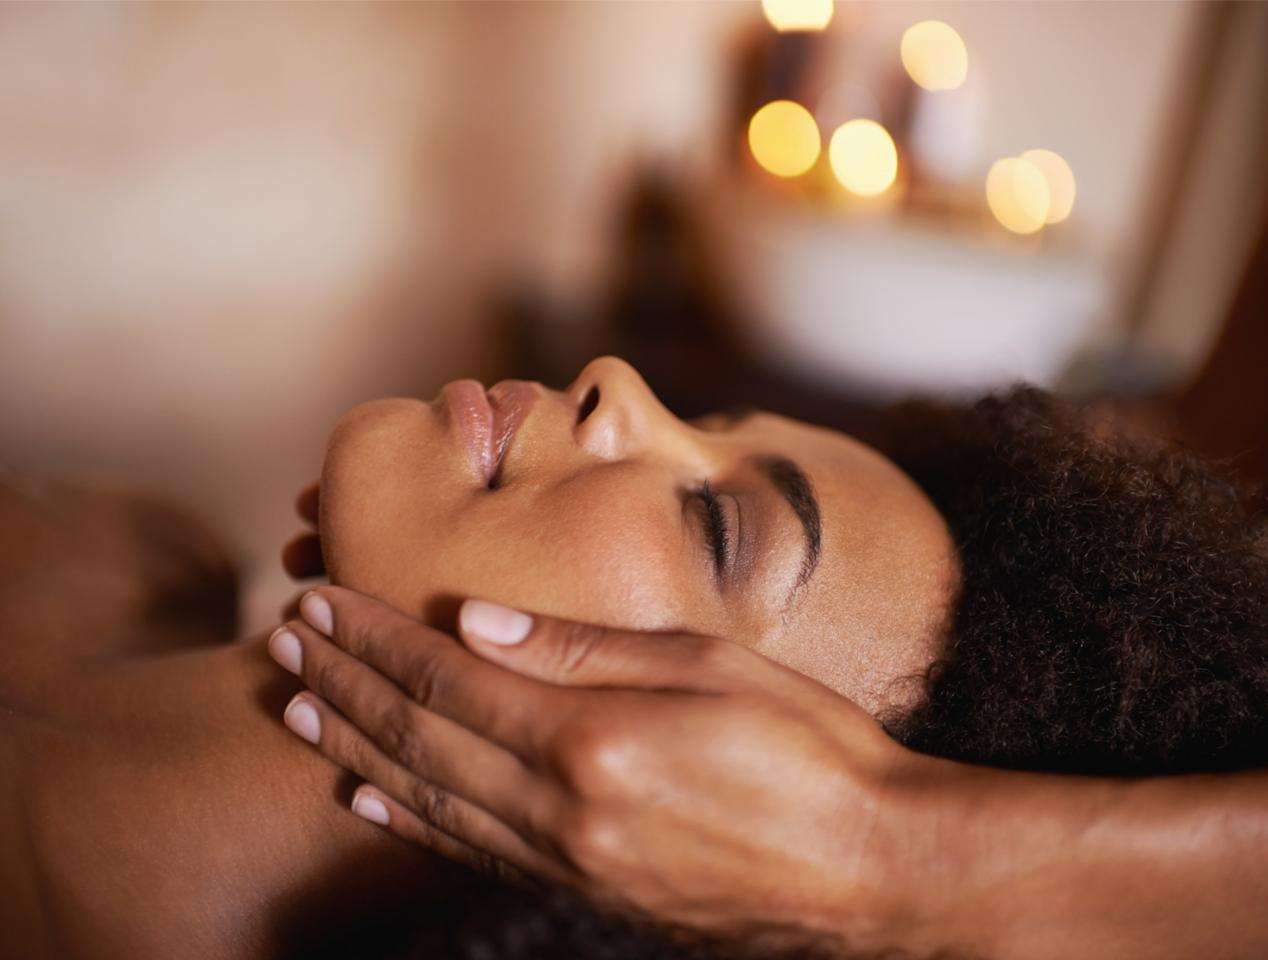 "<p>Self-care is very important for new moms. So why not encourage her to take some ""me time"" and treat her to a relaxing massage, facial, haircut, or aromatherapy treatment? SpaFinder has gift cards you can purchase for salons, wellness centers, and resorts. For more info, visit <a rel=""nofollow"" href=""https://www.spafinder.com/Catalog/spagiftcertificates.jsp?_ga=2.43344485.178450804.1494351211-792127783.1494342296"">spafinder.com</a>. (Photo:PeopleImages) </p>"